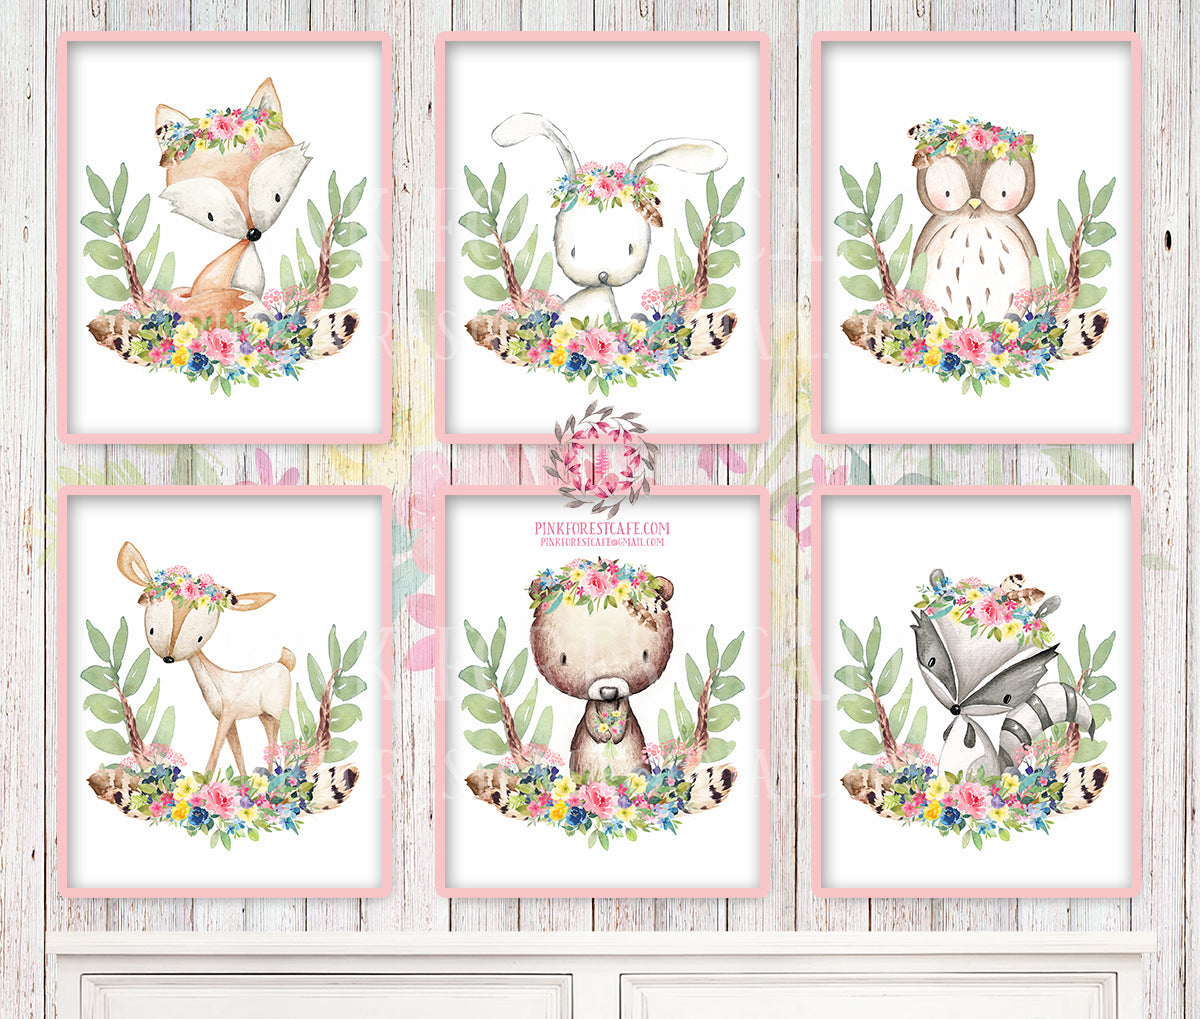 6 Deer Fox Bunny Rabbit Bear Printable Print Wall Art Woodland Boho Feather Bohemian Floral Nursery Baby Girl Room Set Lot Prints Owl Raccoon Decor